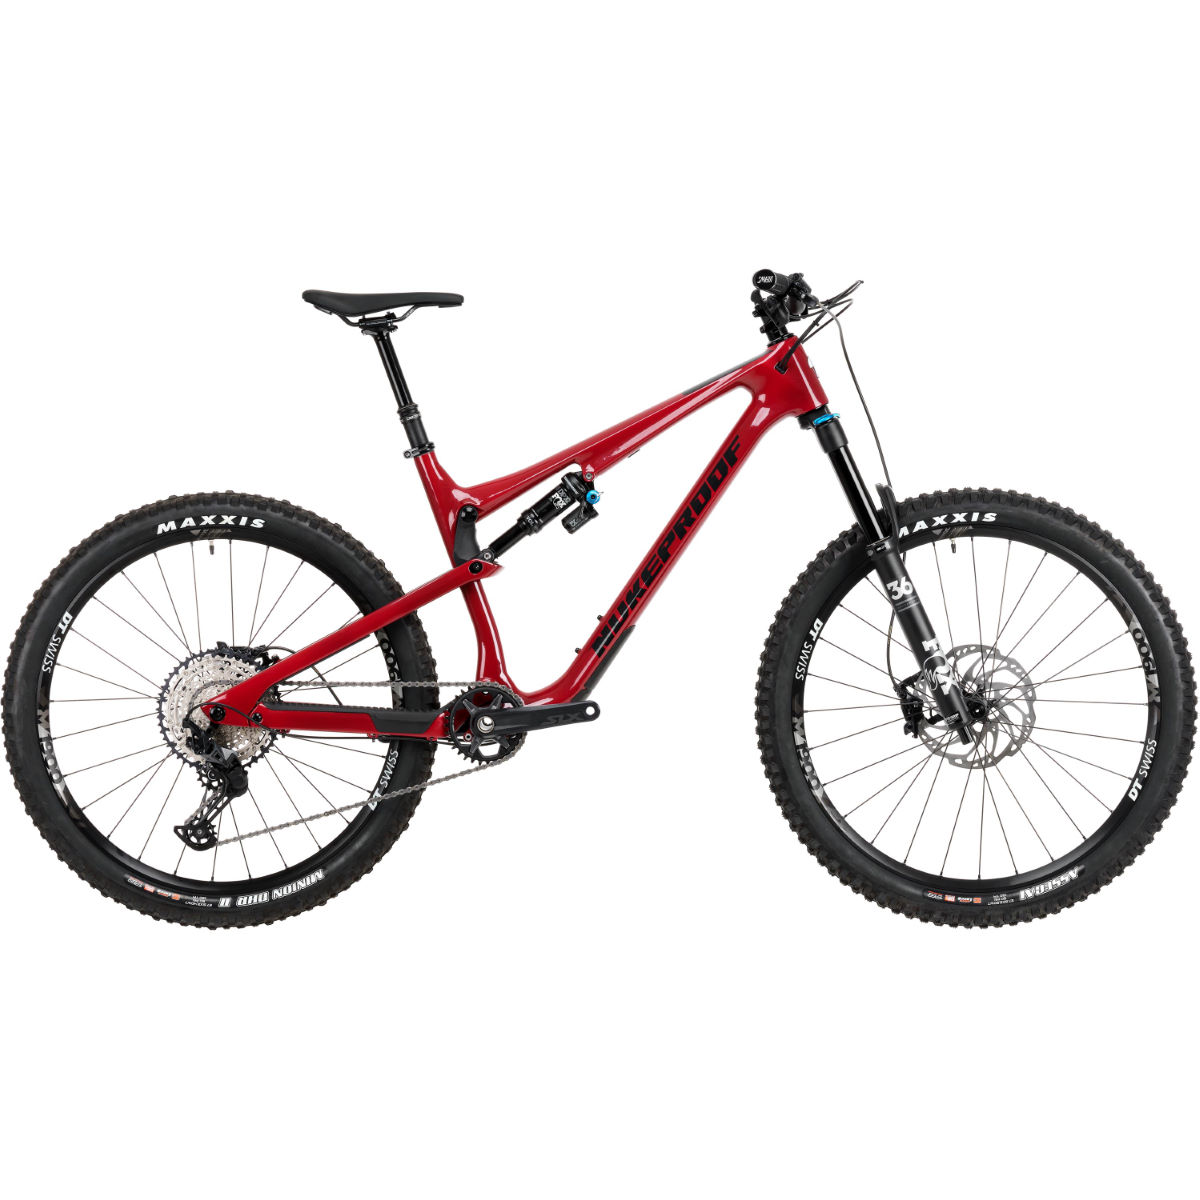 Nukeproof Nukeproof Reactor 275 Elite Carbon Bike (SLX - 2020)   Full Suspension Mountain Bikes